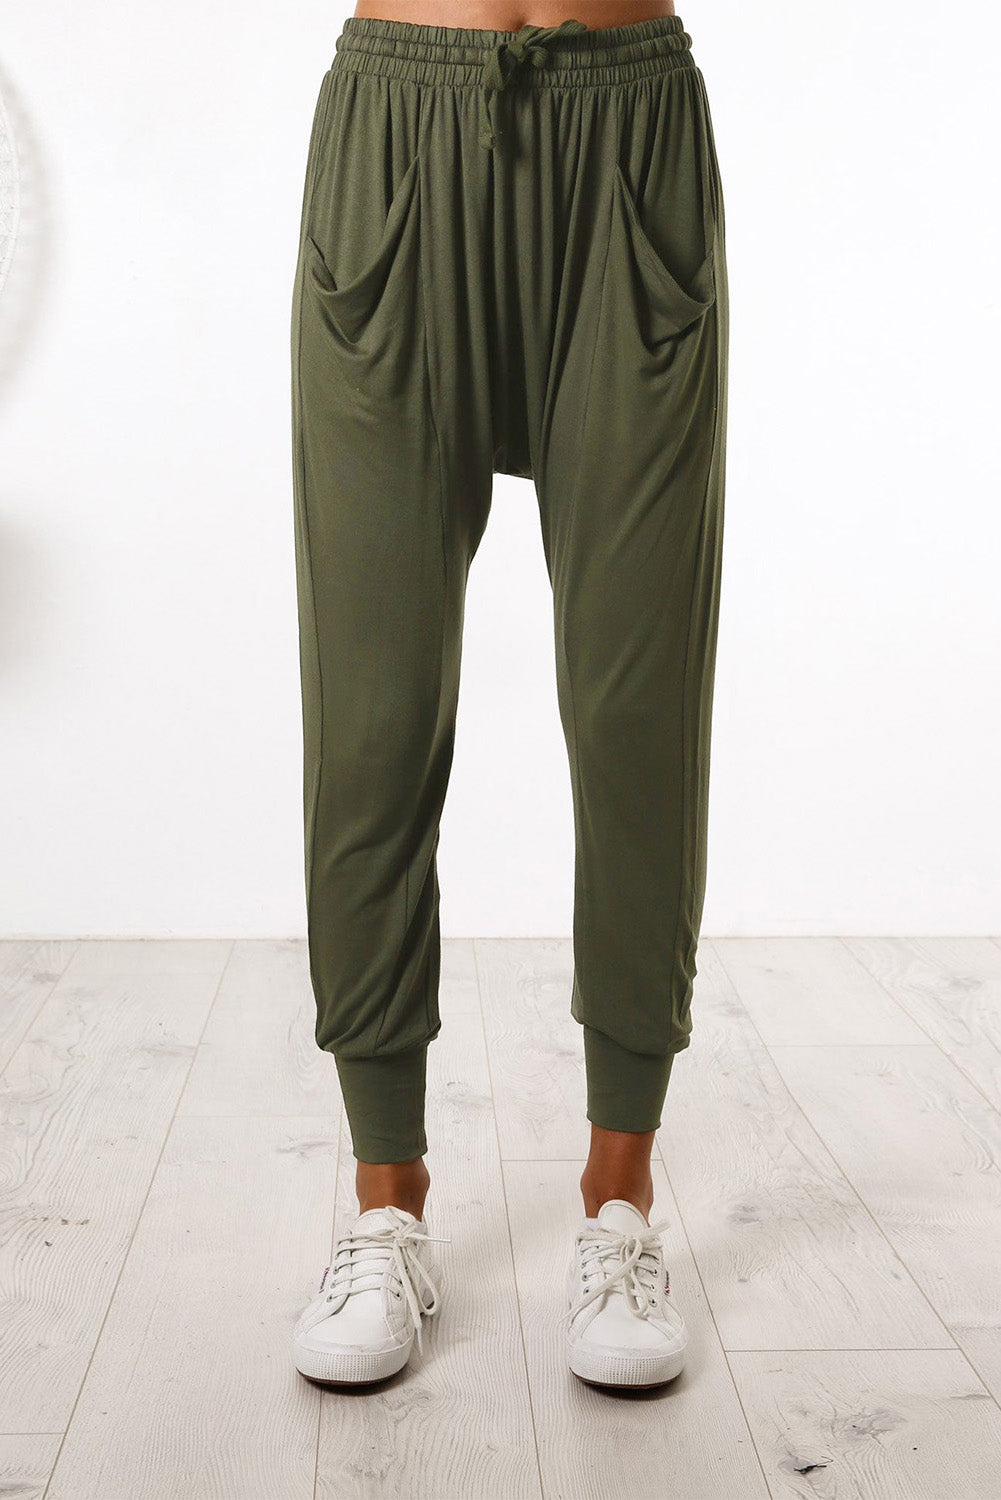 Green Casual Drop Crotch Tapered Leg Pants